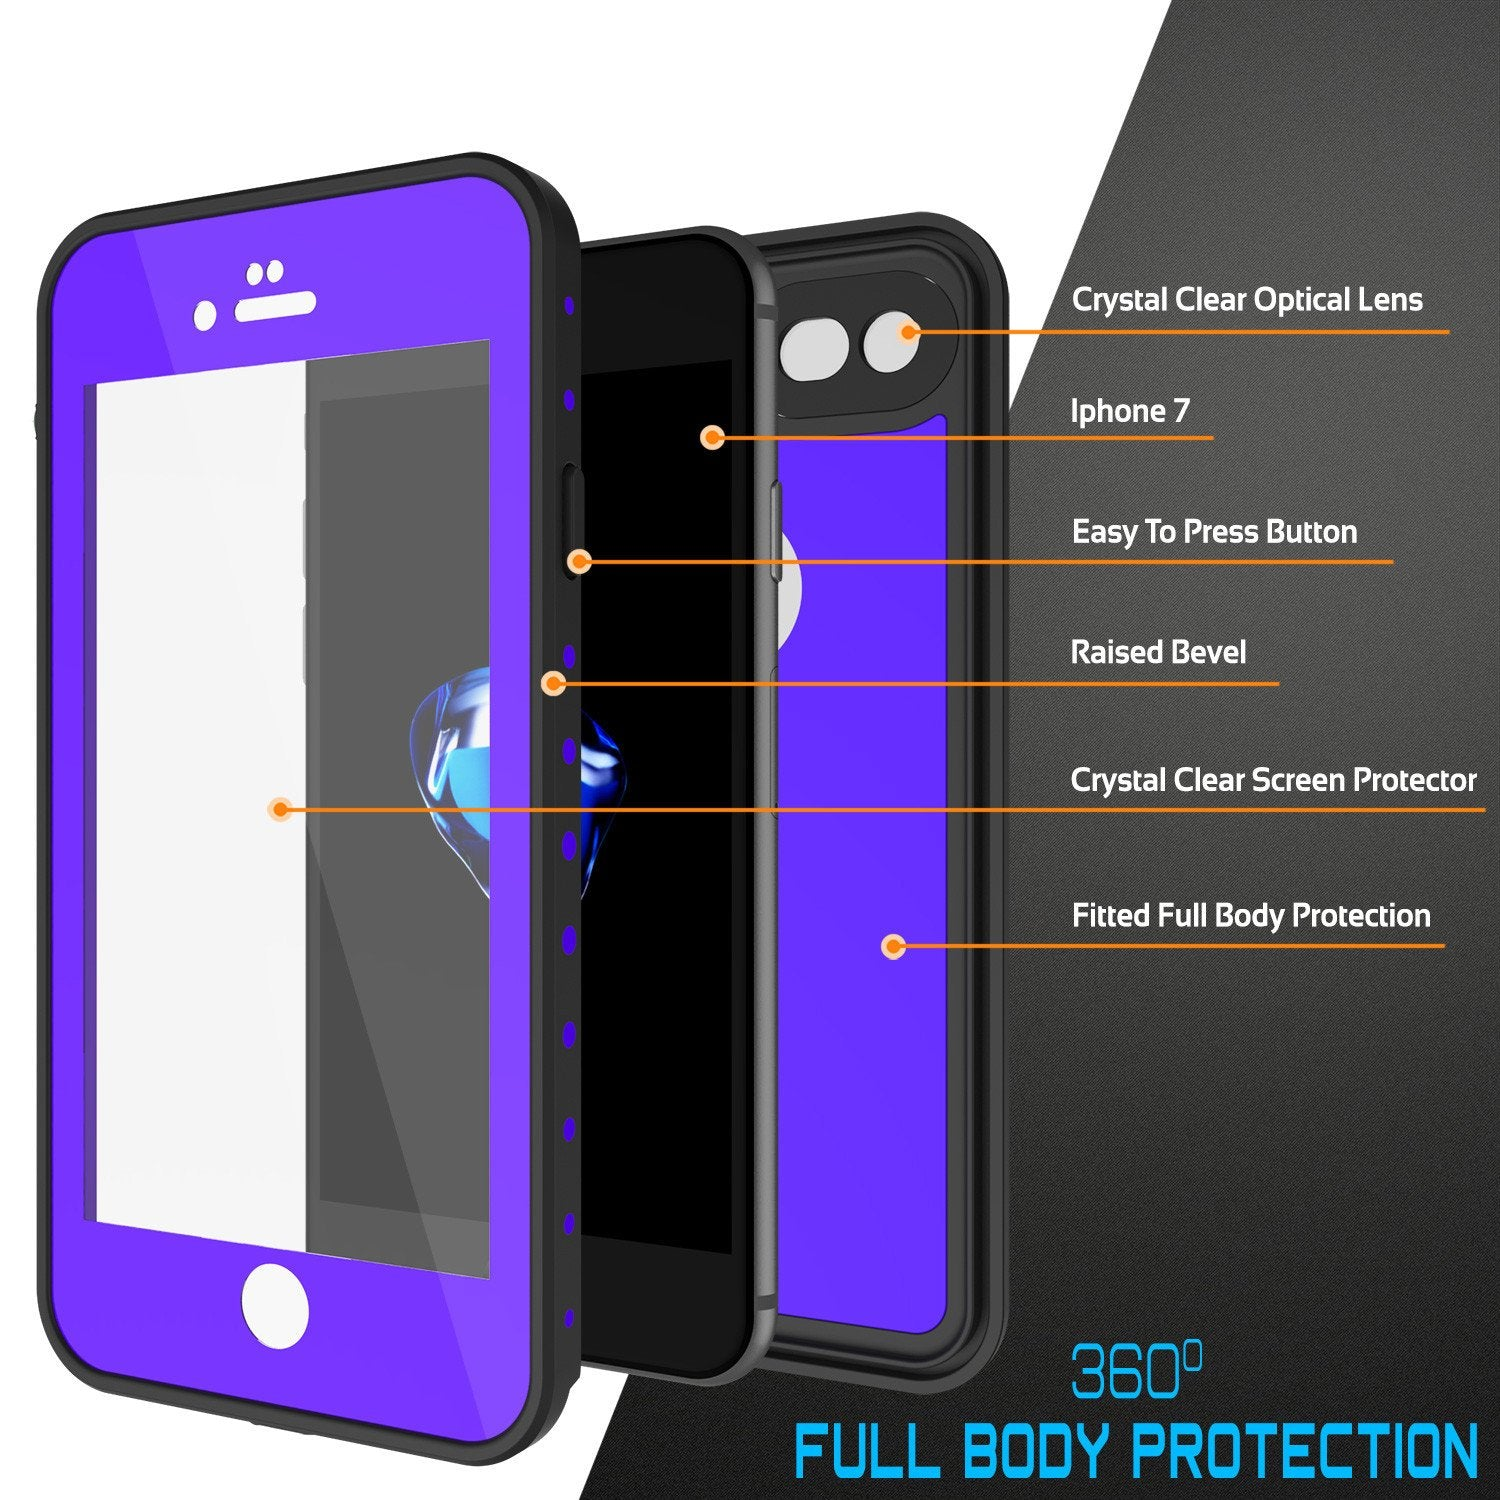 iPhone 7 Waterproof Case, Punkcase [Purple] [StudStar Series] [Slim Fit] [IP68 Certified] [Shockproof] [Dirtproof] [Snowproof] Armor Cover for Apple iPhone 7 & 7s